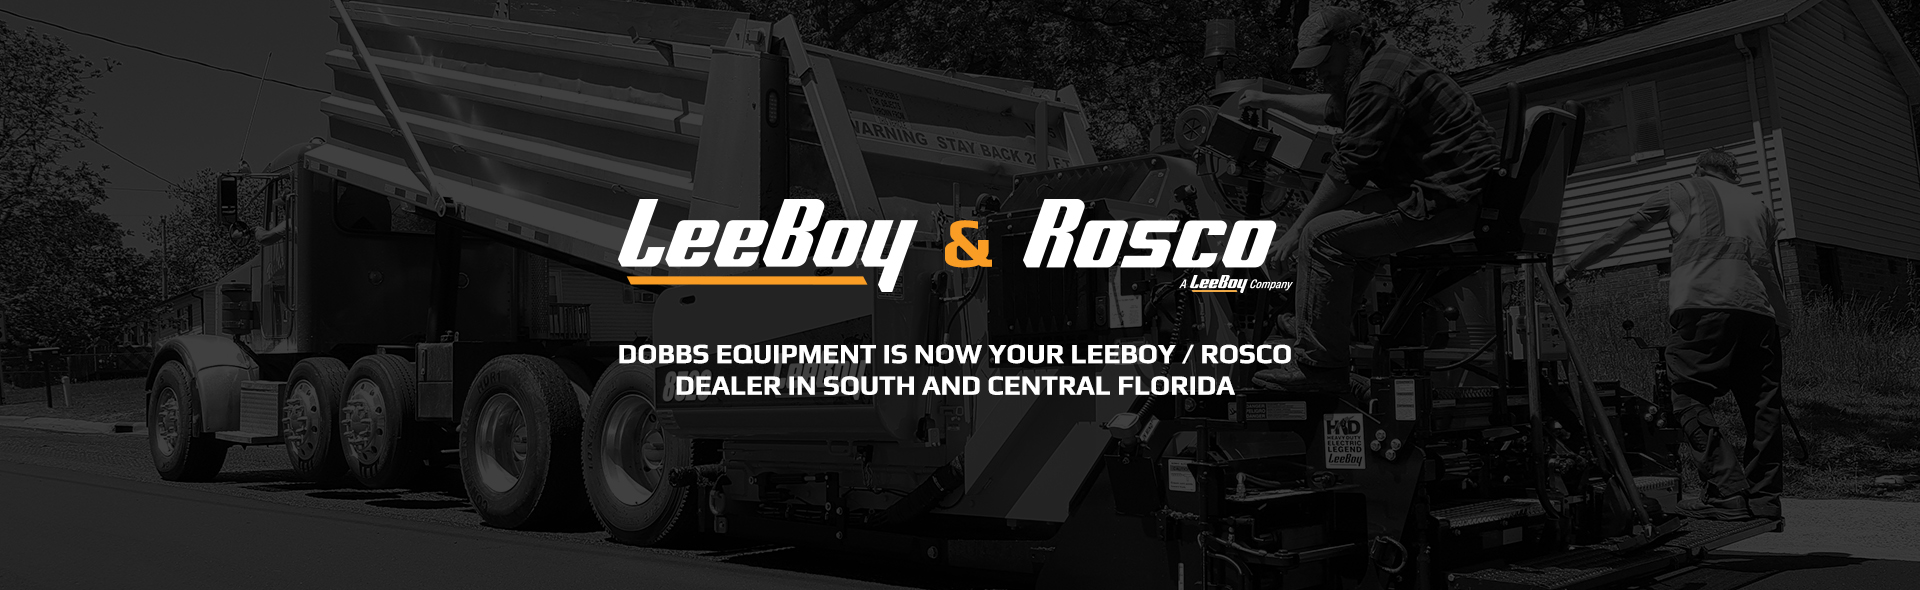 LeeBoy and Rosco at Dobbs Equipment in Southern Florida